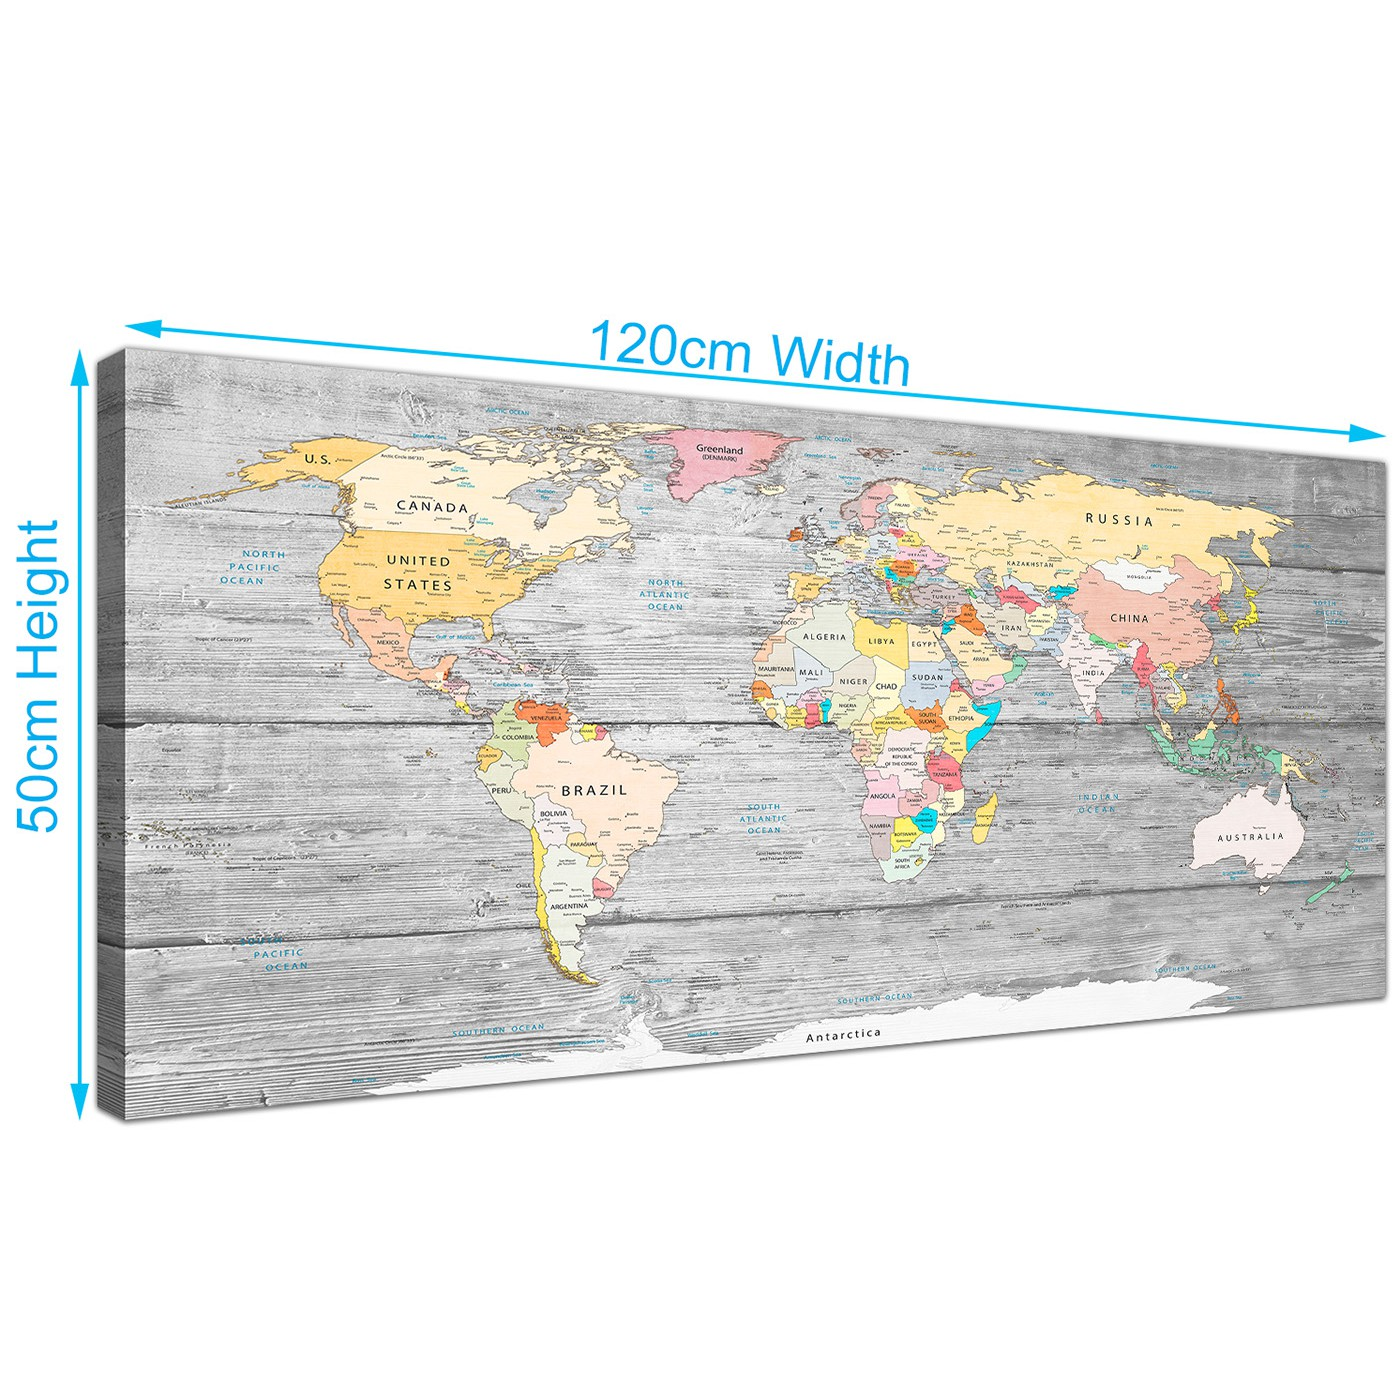 Large map of world canvas art print colourful light grey modern display gallery item 2 panoramic grey large map of world canvas art print colourful light grey maps canvas modern 120cm display gallery item 3 gumiabroncs Gallery